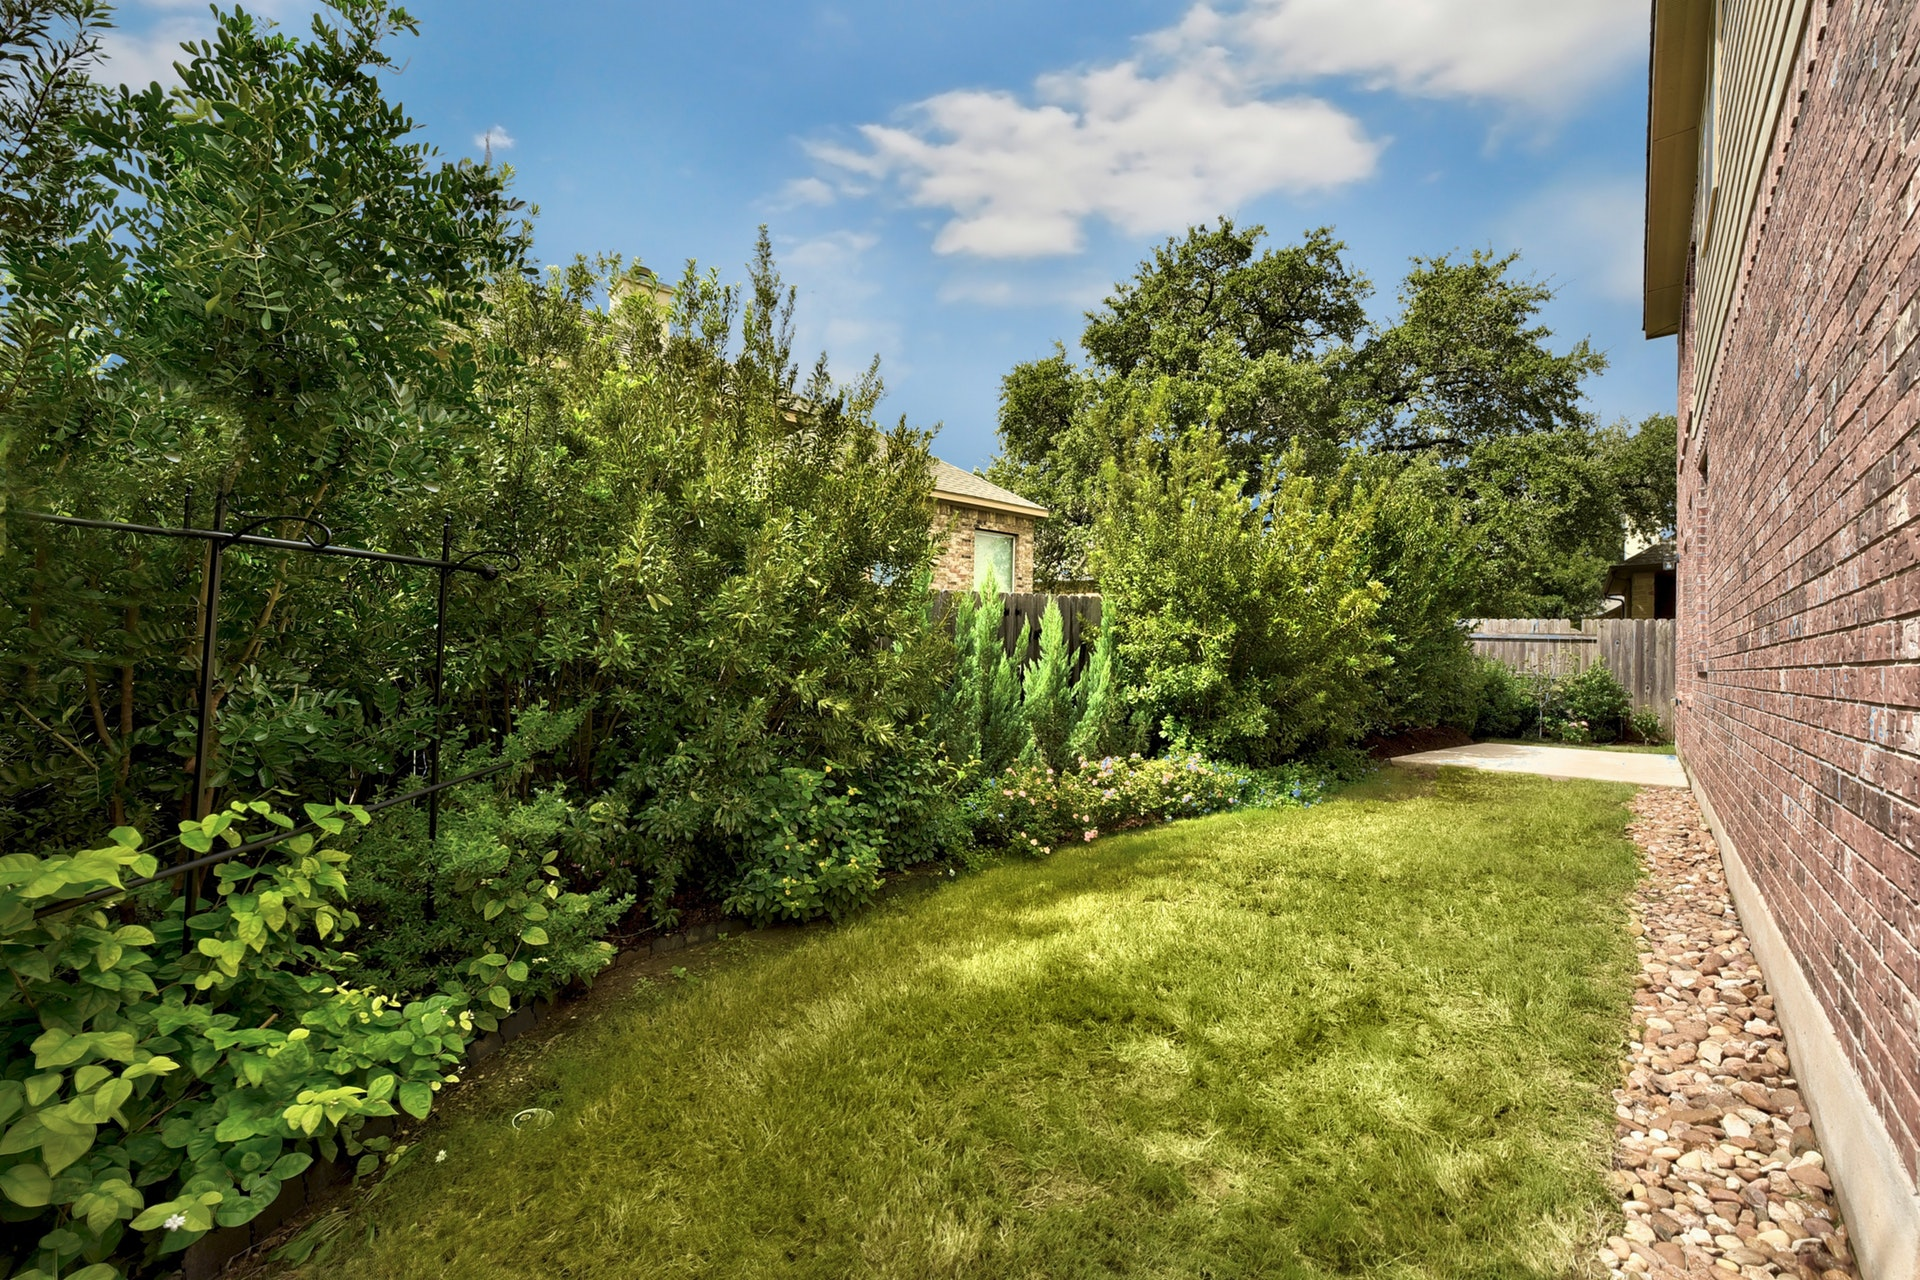 2121 Turtle Mountain - Backyard